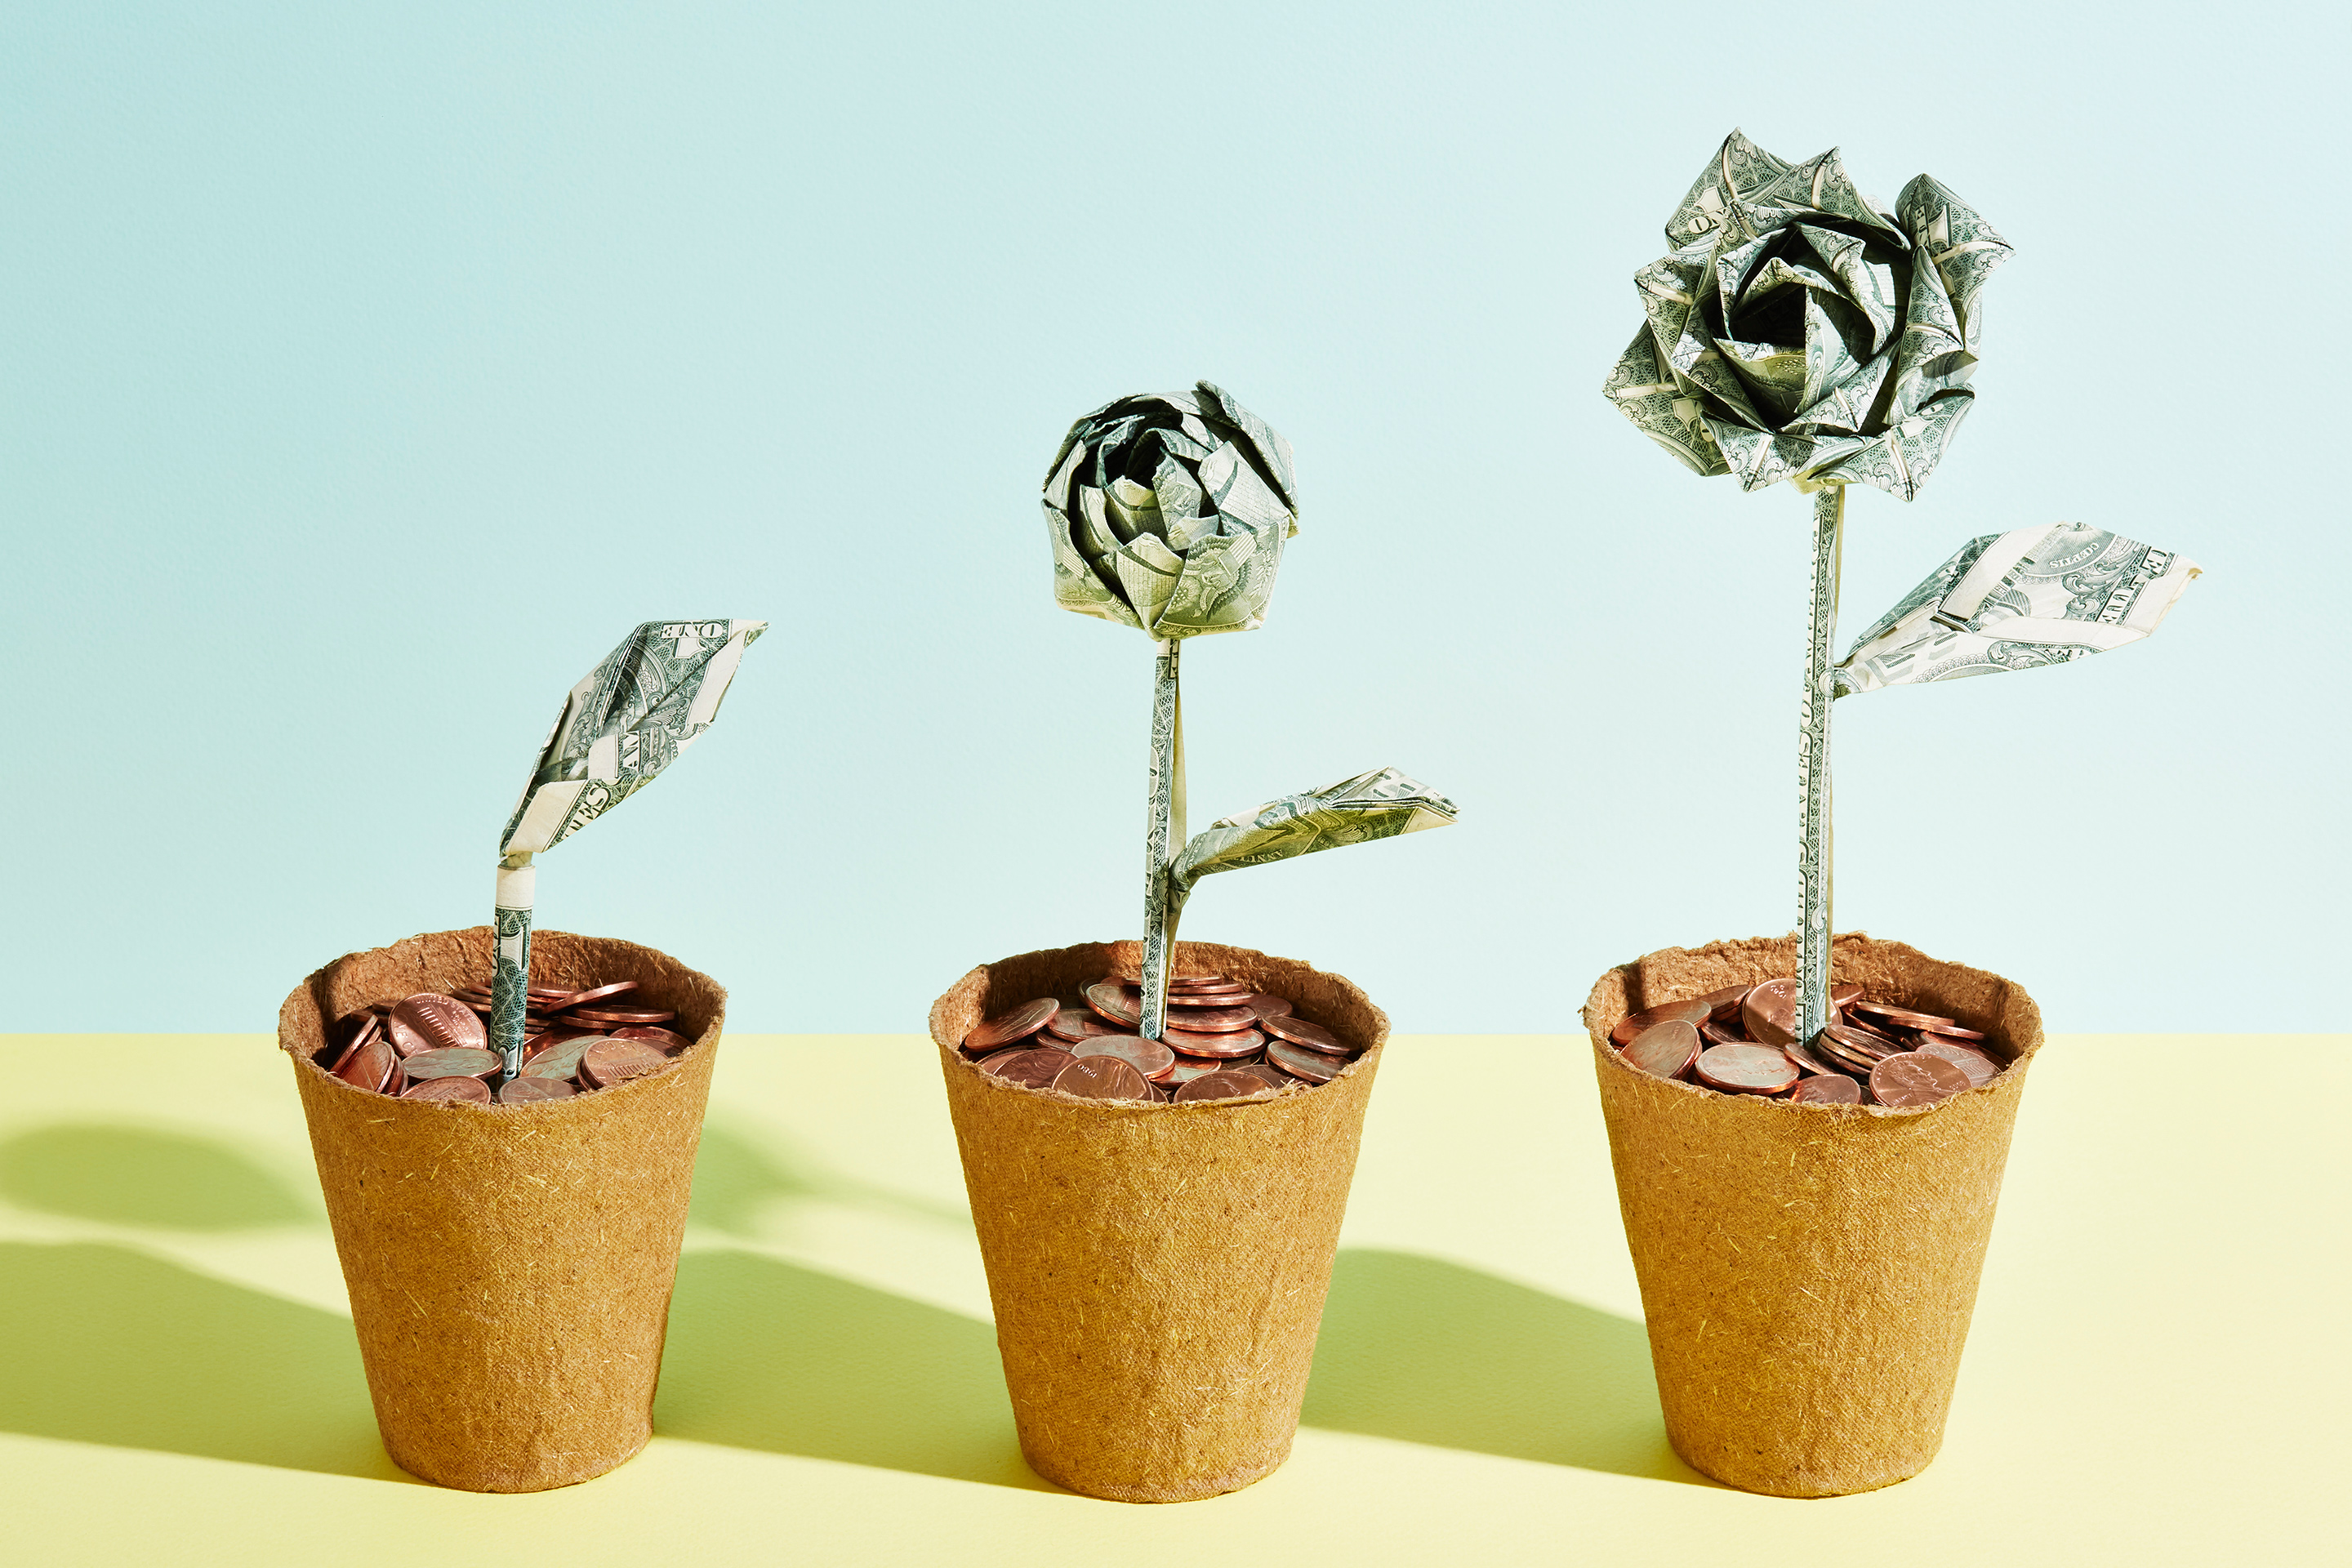 three flowerpots show a plant made of money in successive growth stages, culminating in a rose made of money